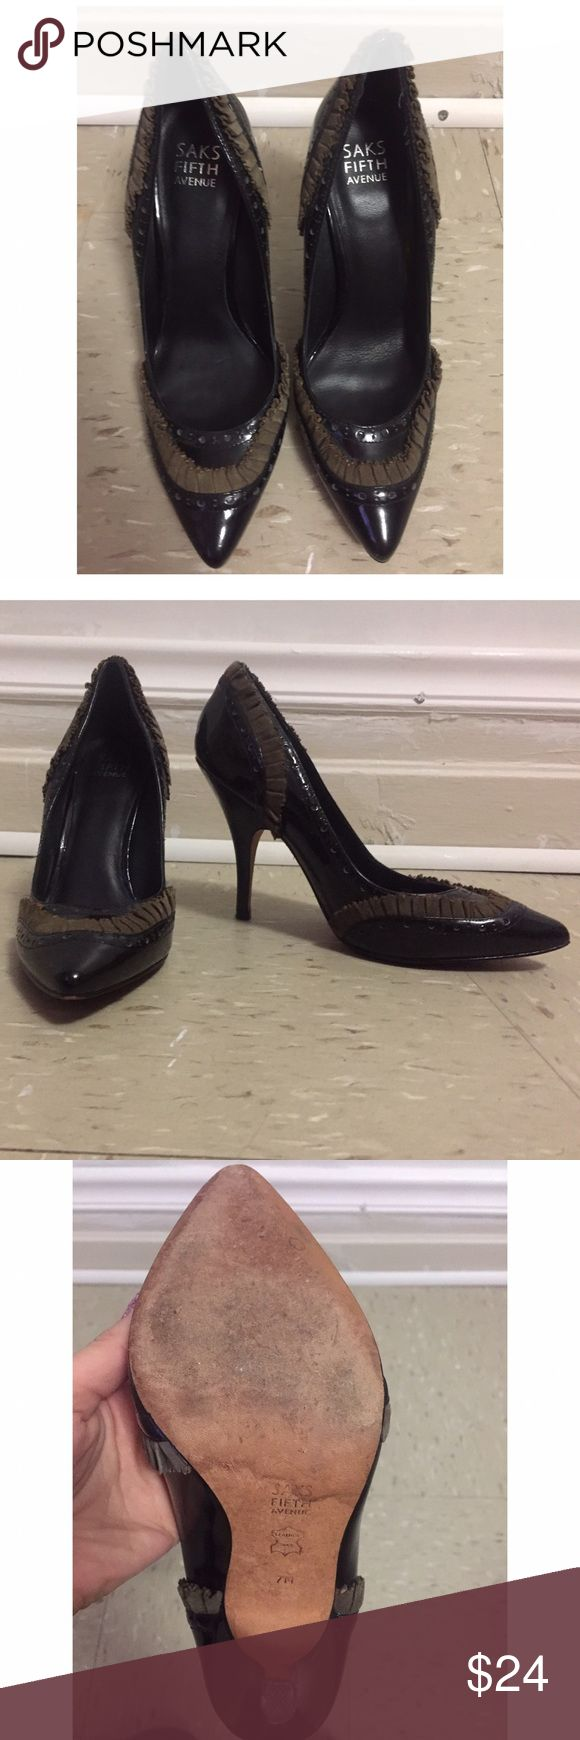 Saks Fifth Avenue stilletos Size 7M This ones are really expensives in the Saks 5th Ave Store! Are used in really good condition Saks Fifth Avenue Shoes Heels